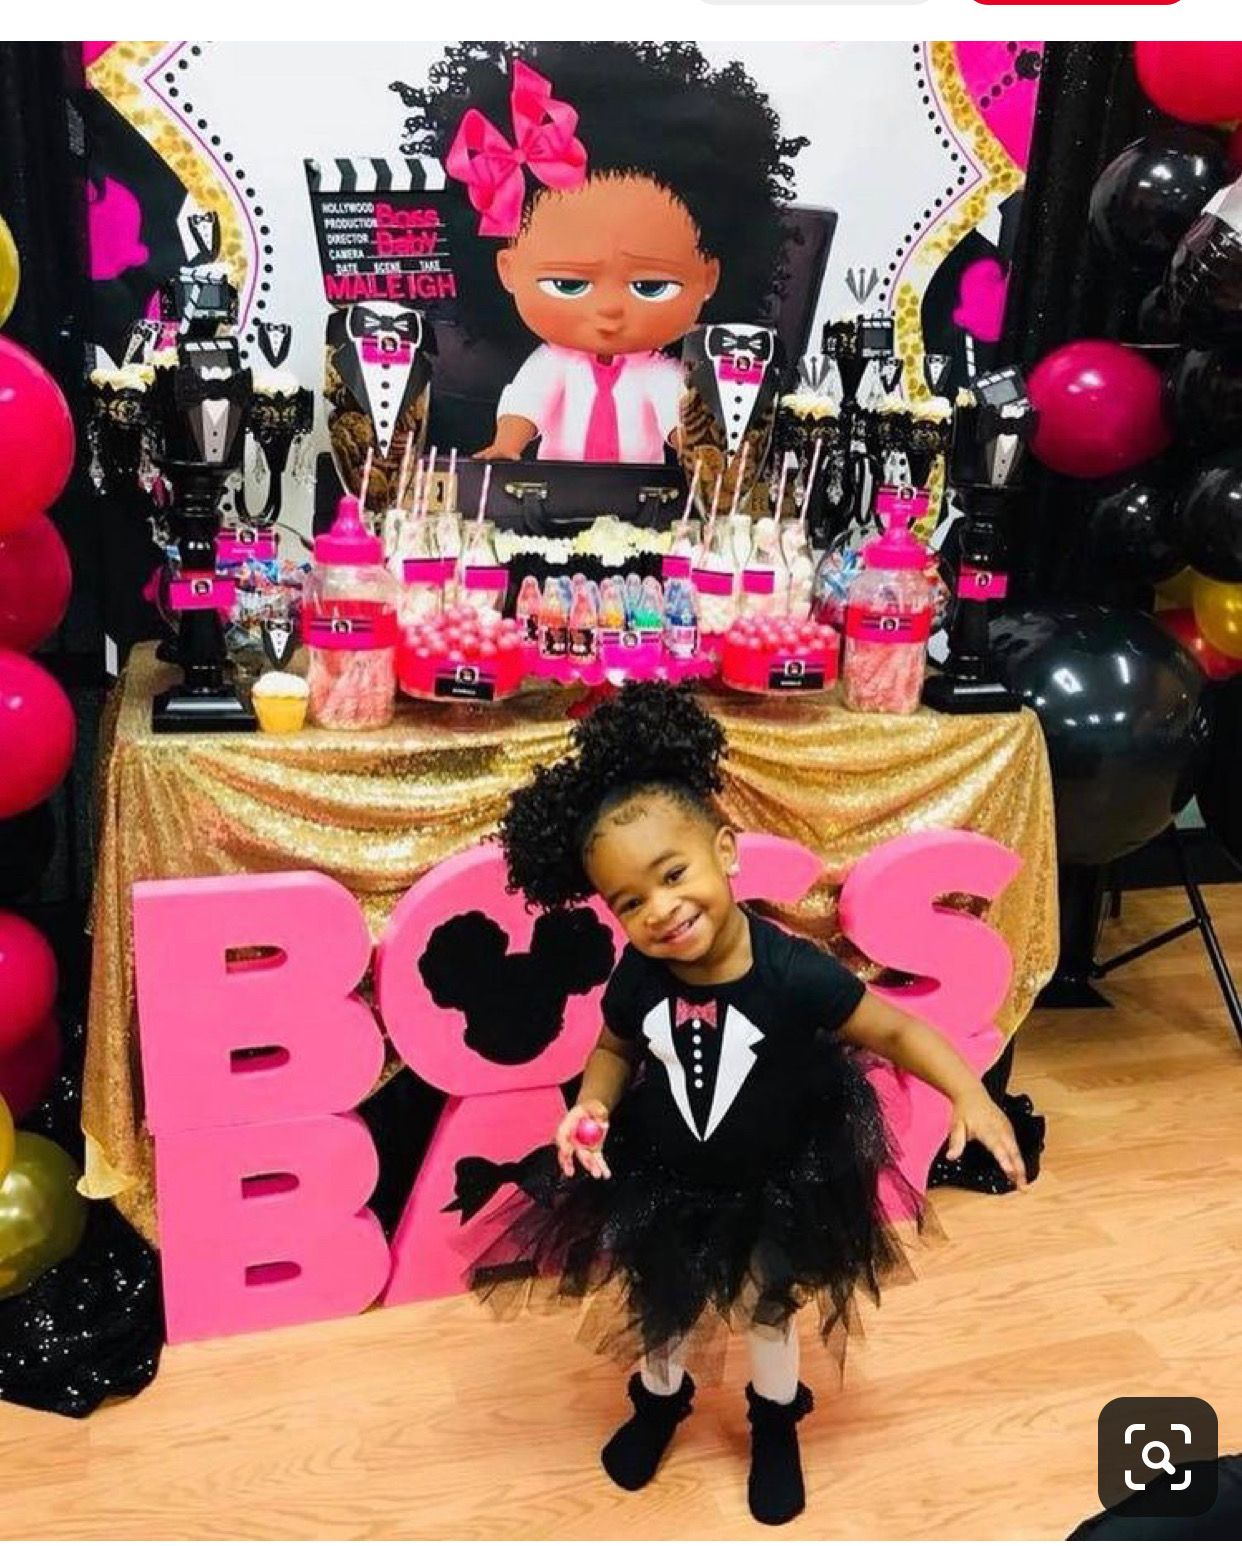 5 Low Stress Birthday Party Ideas For Ages 1 Through 8: BOSS BABY PARTY IDEAS ♠️♠️♠️♠️